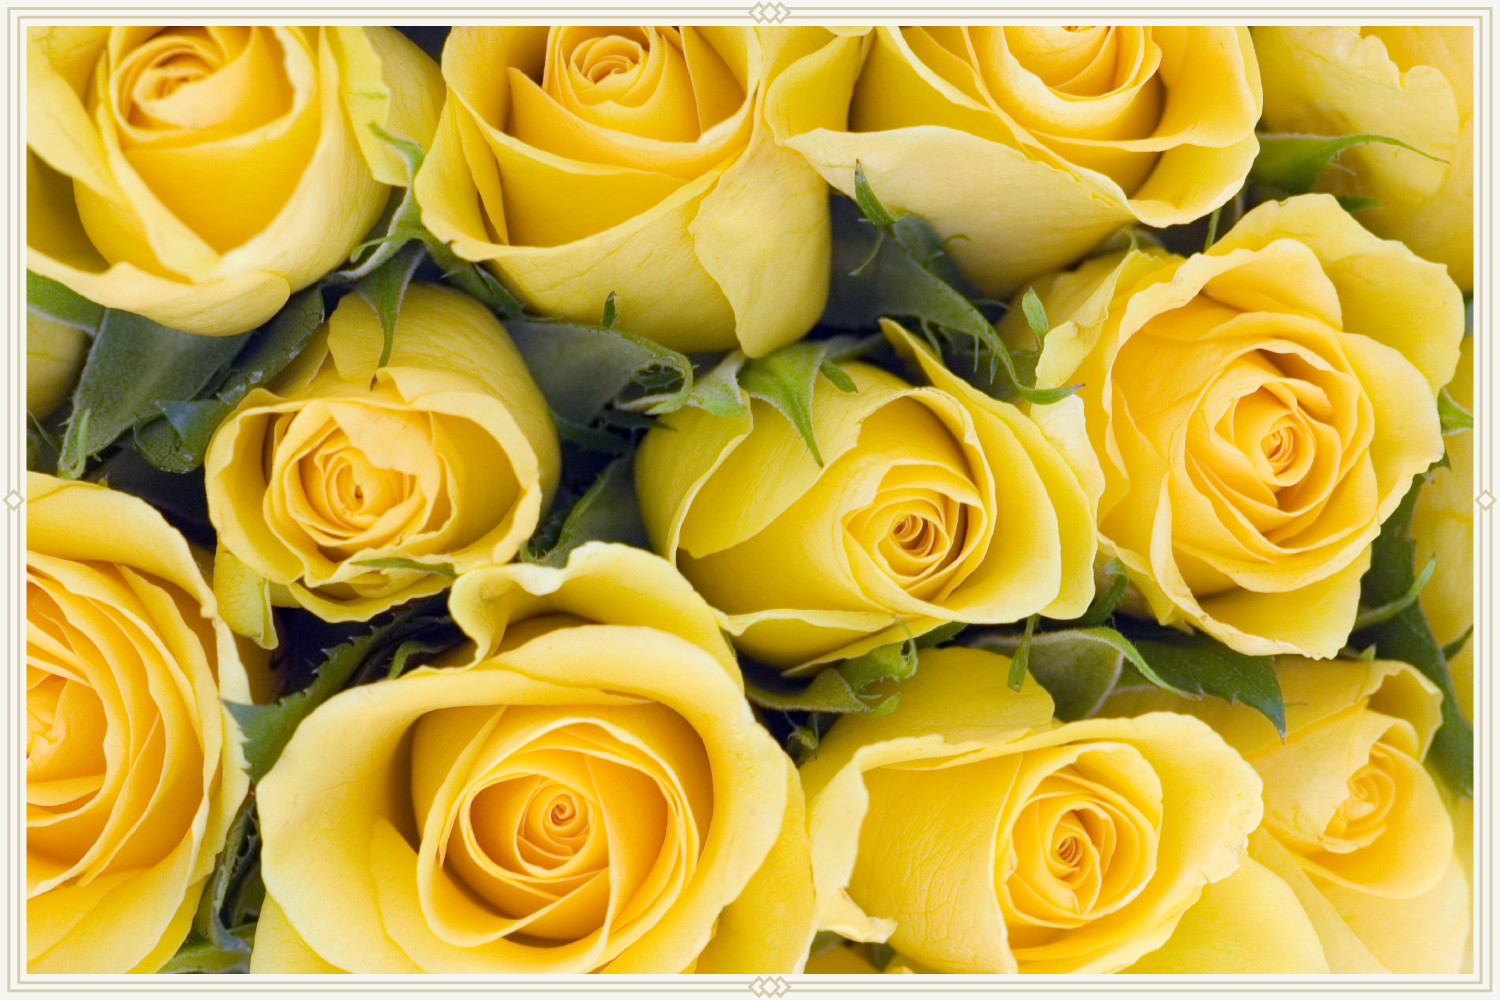 close-up shot of yellow roses